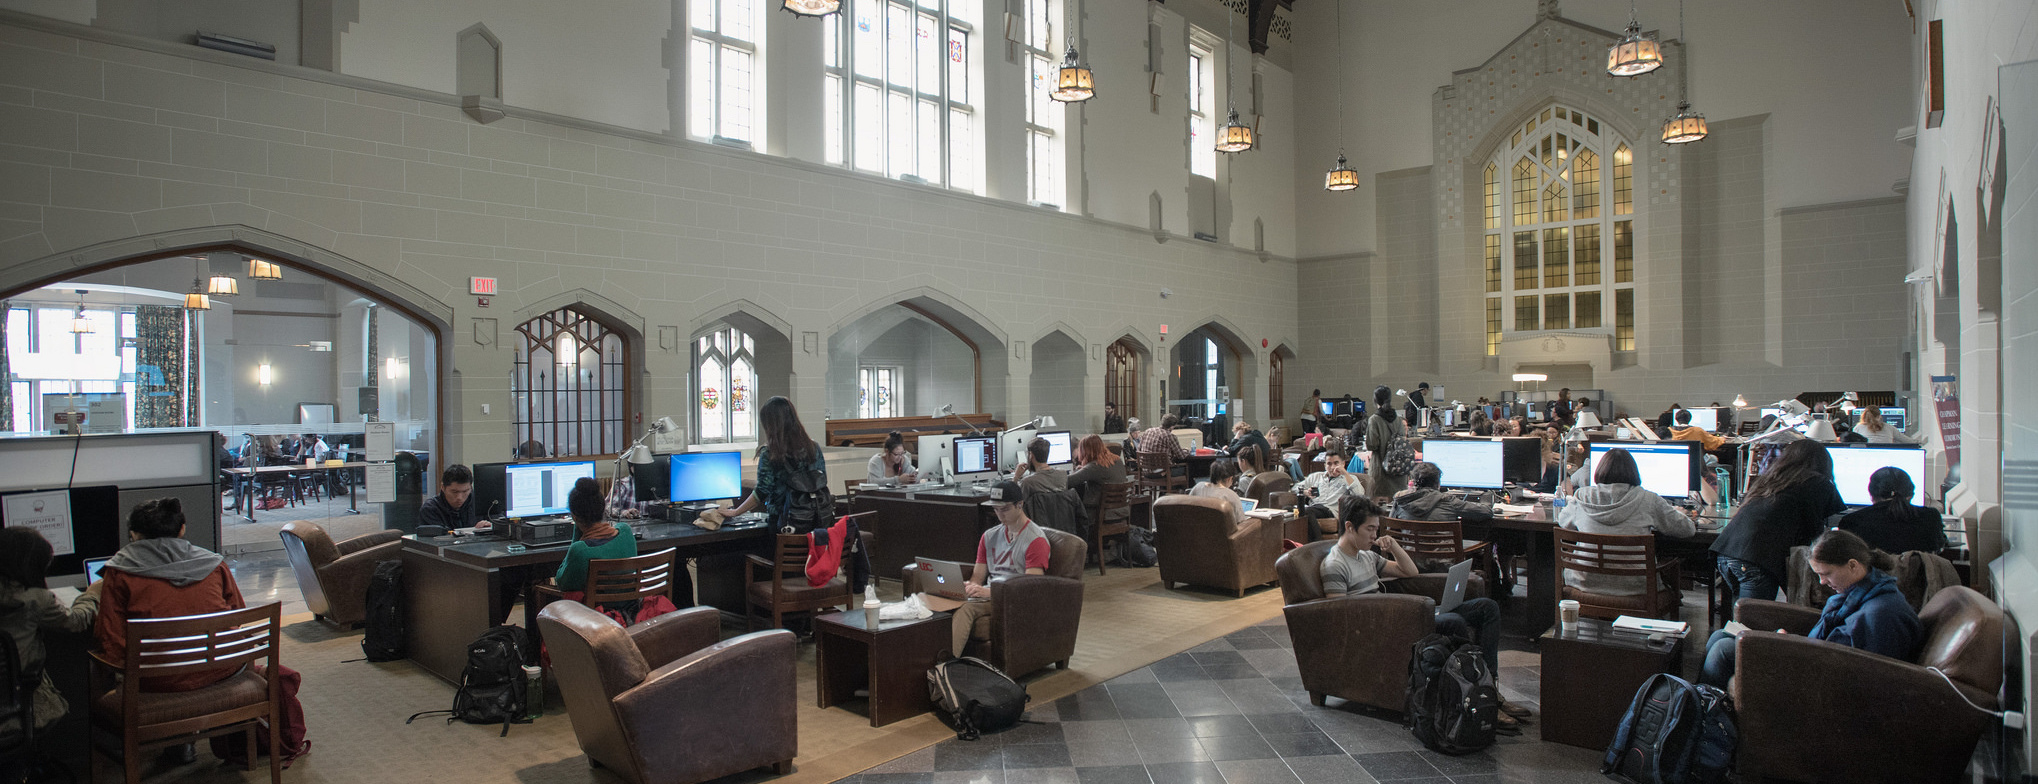 Students studying at the Chapman Learning Commons